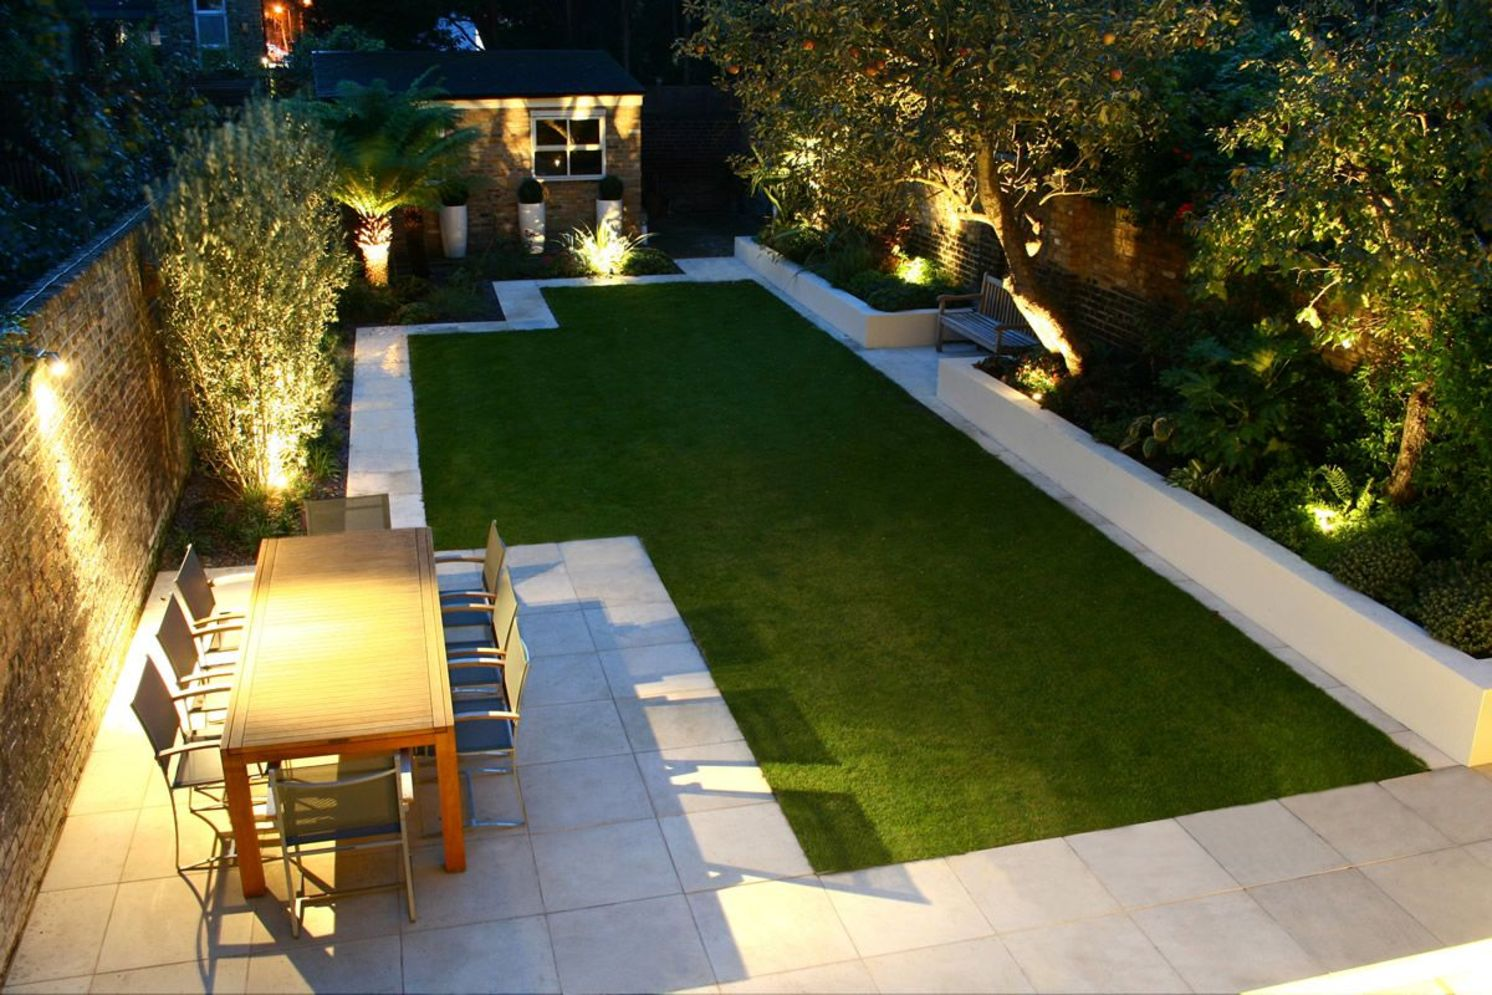 Beautiful garden lighting ideas with ground level ambient light giving luxurious resorts look Image 29